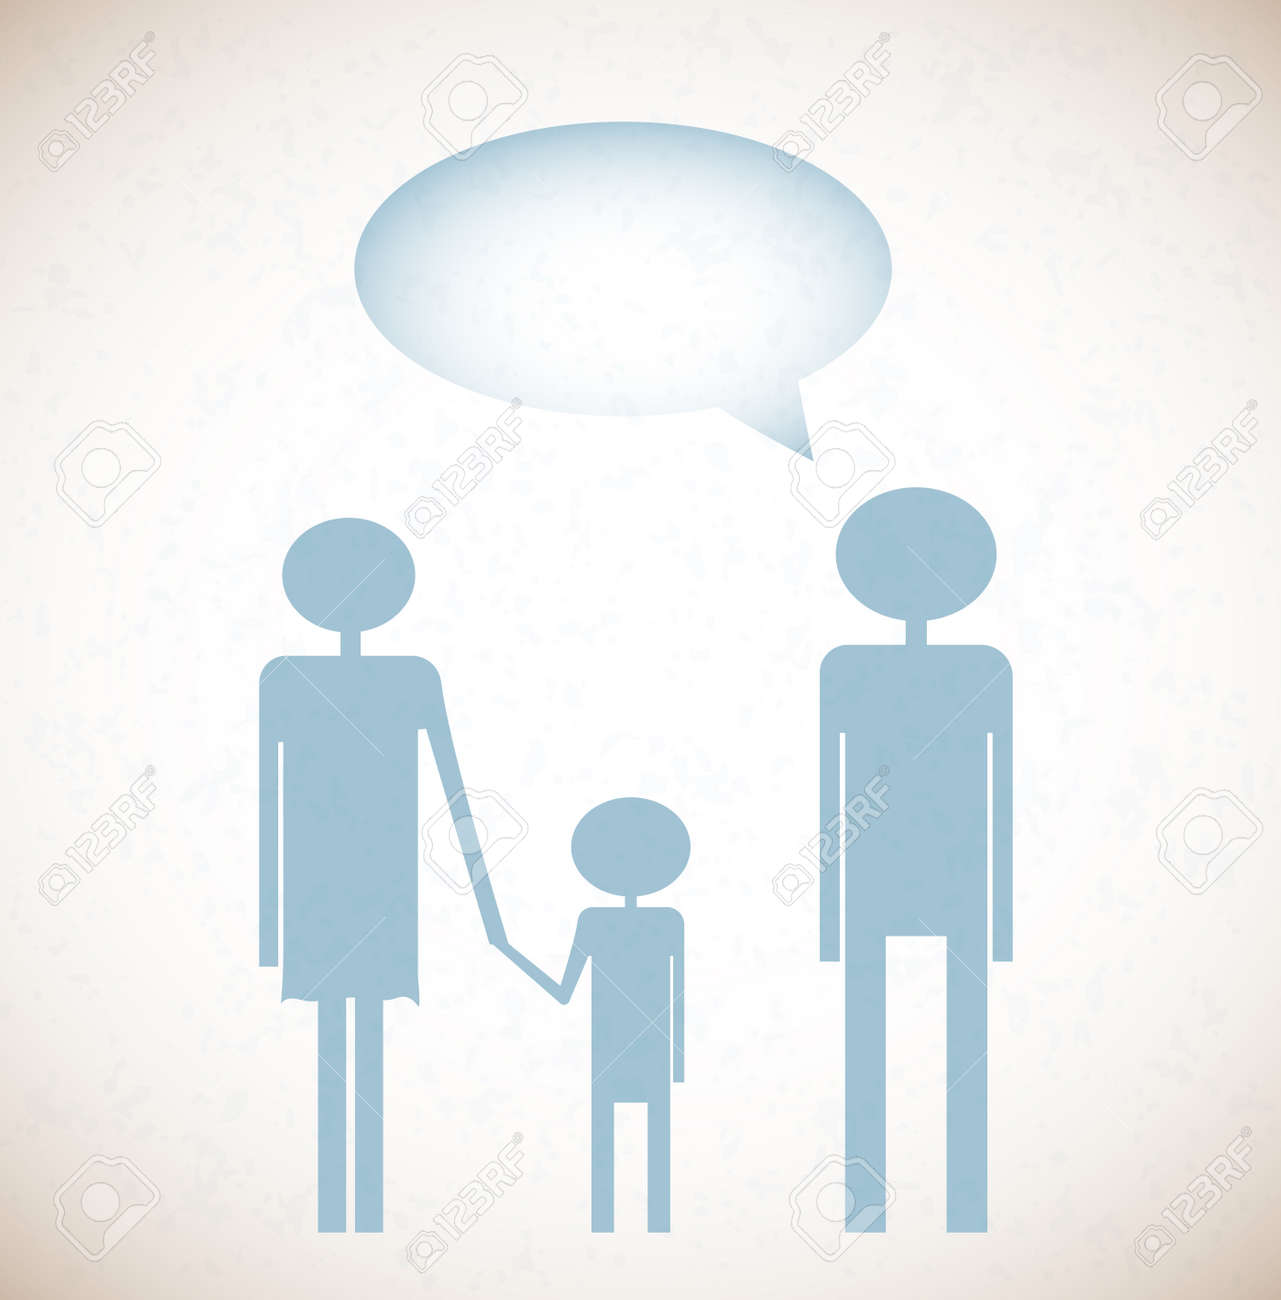 Grunge background with family and say bubble Stock Vector - 16171068